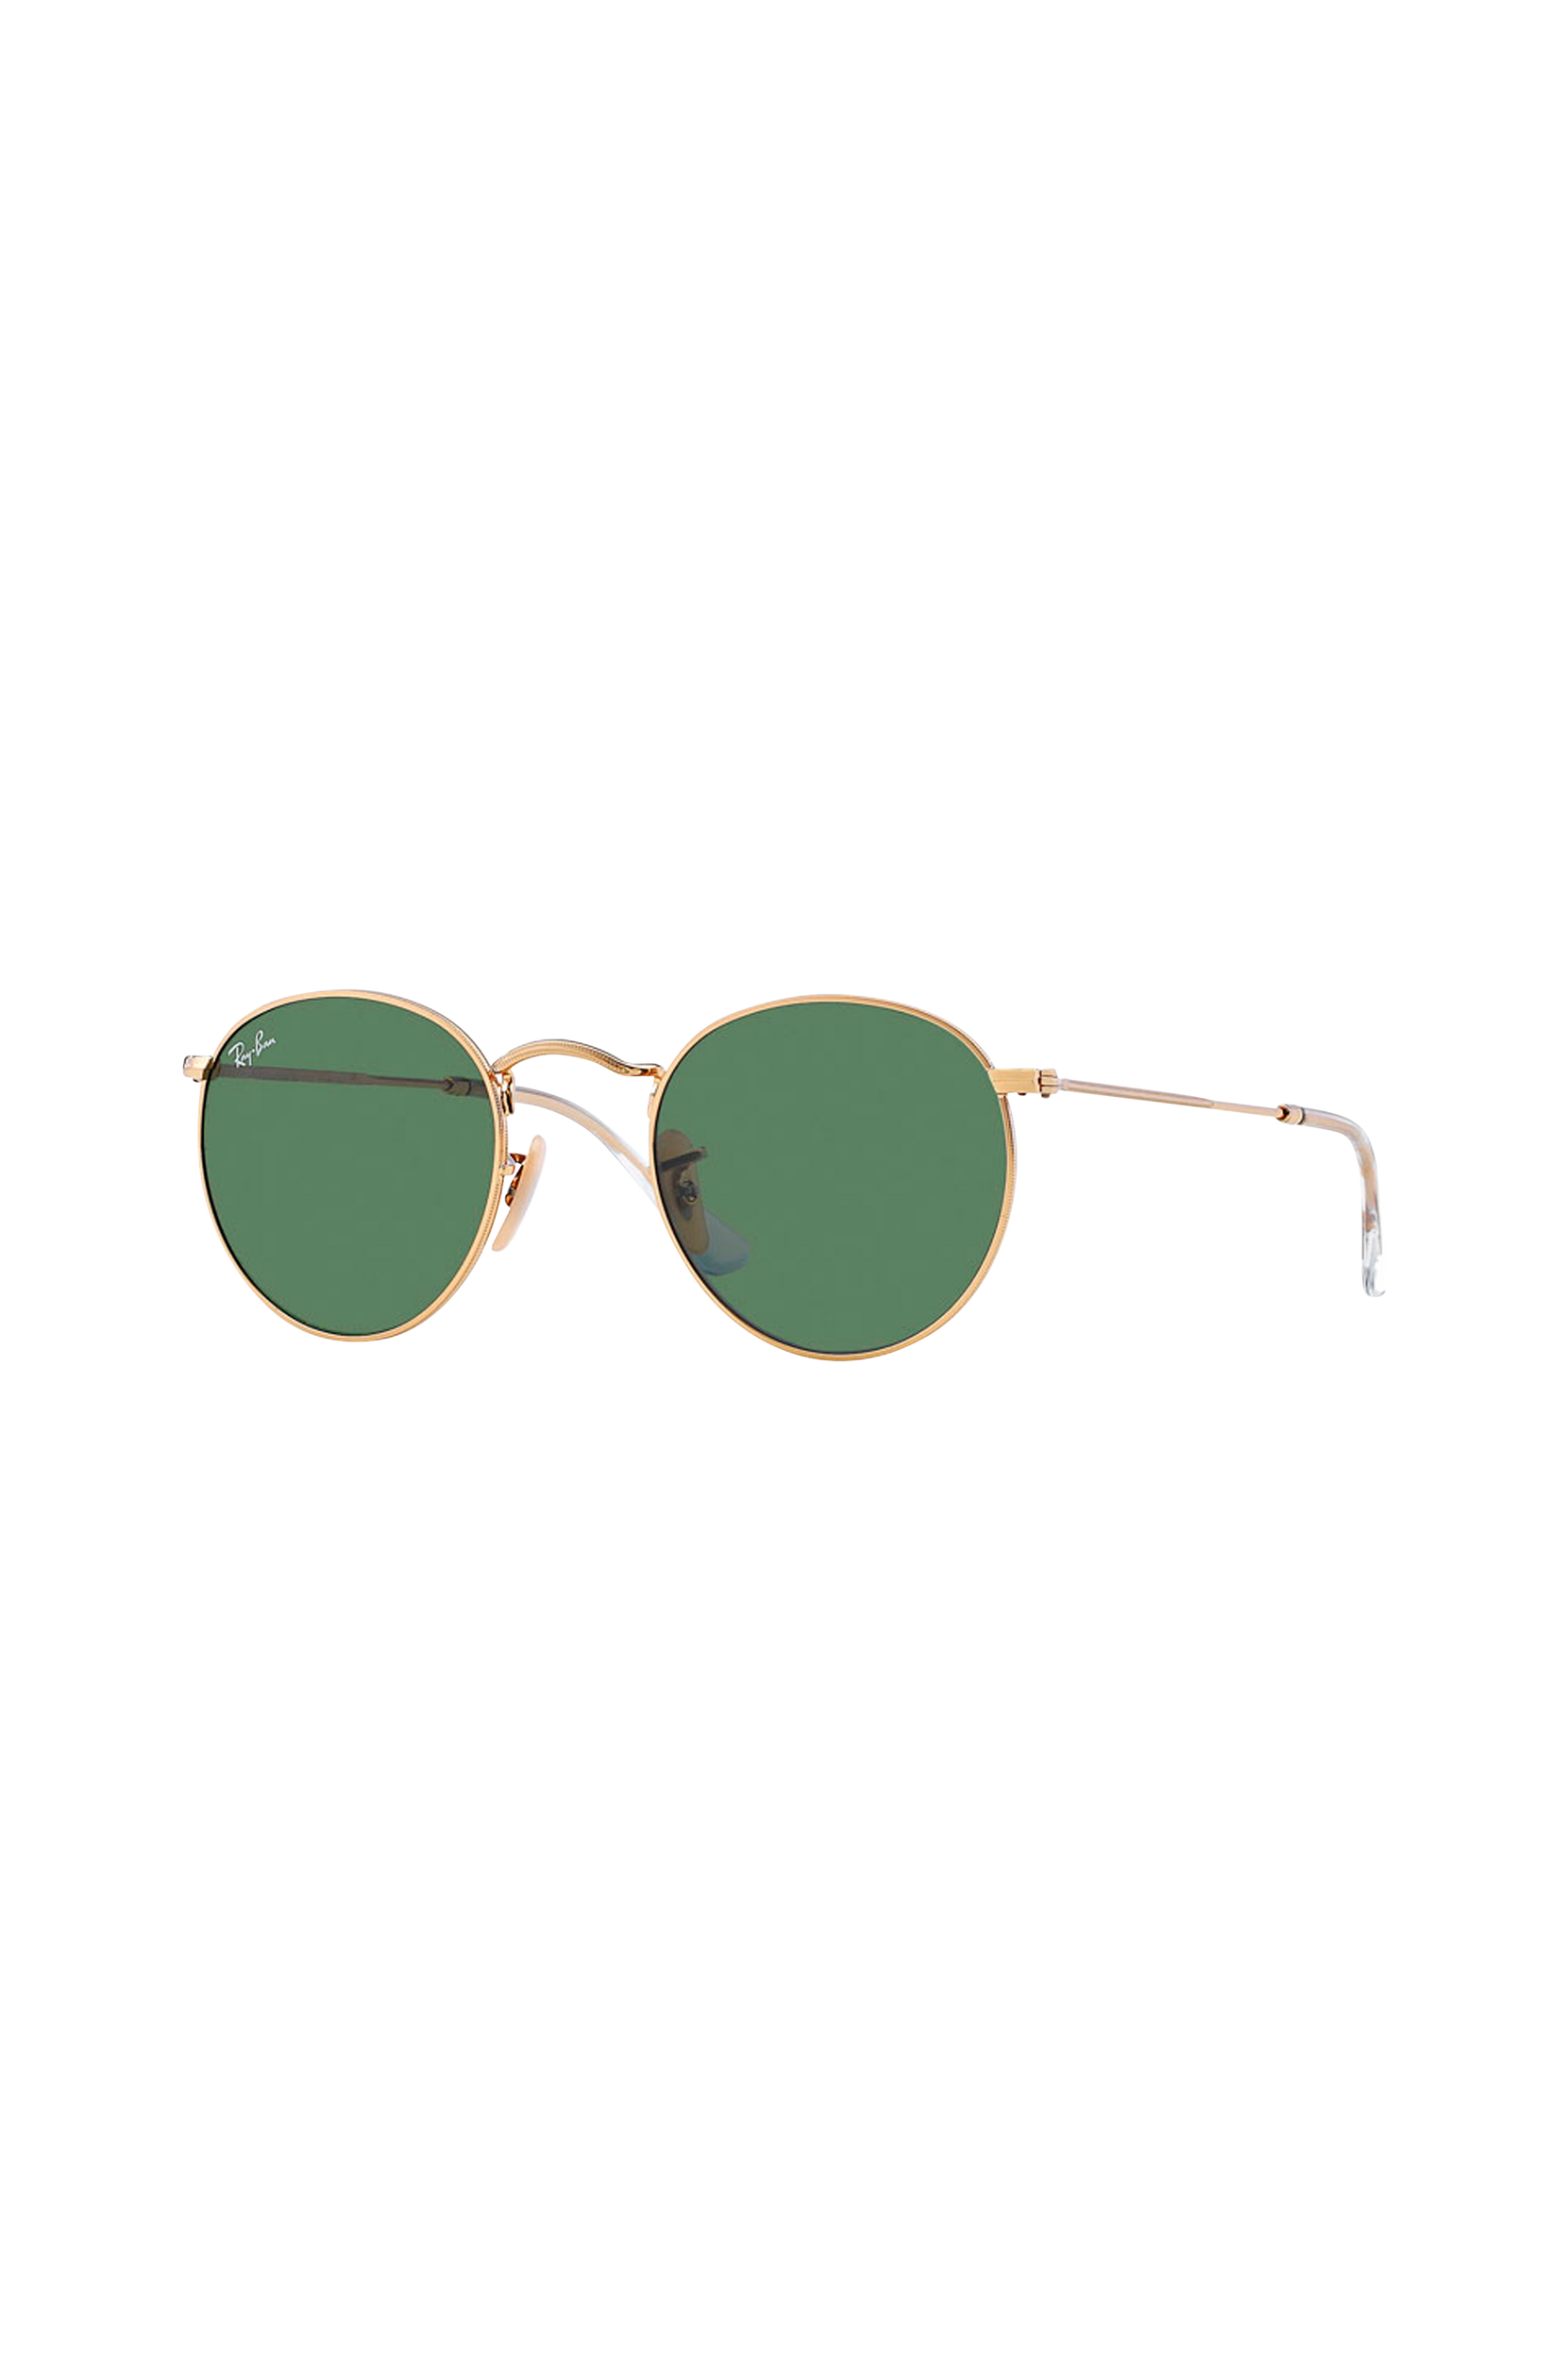 Solbriller Round Metal RB3447-001 Arista Ray Ban Accessories til Kvinder i